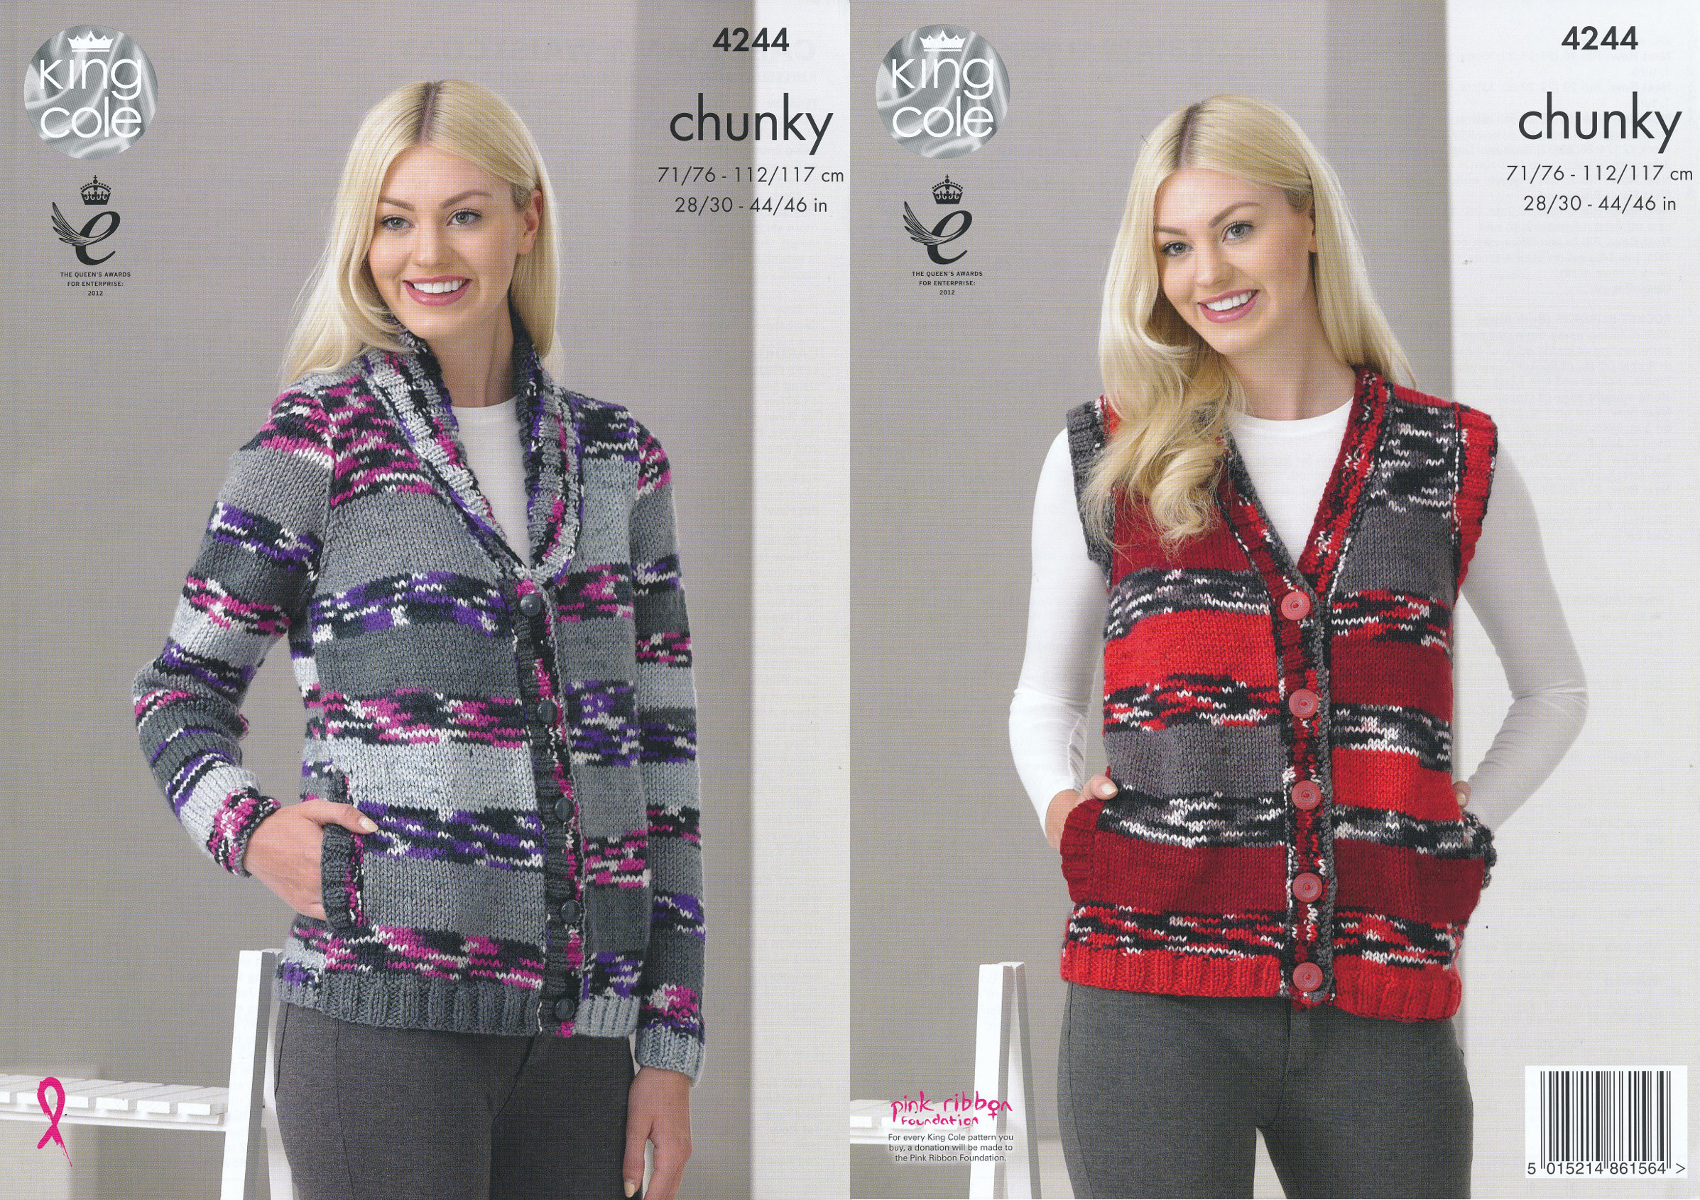 King Cole Ladies Chunky Knitting Pattern Cardigan ...